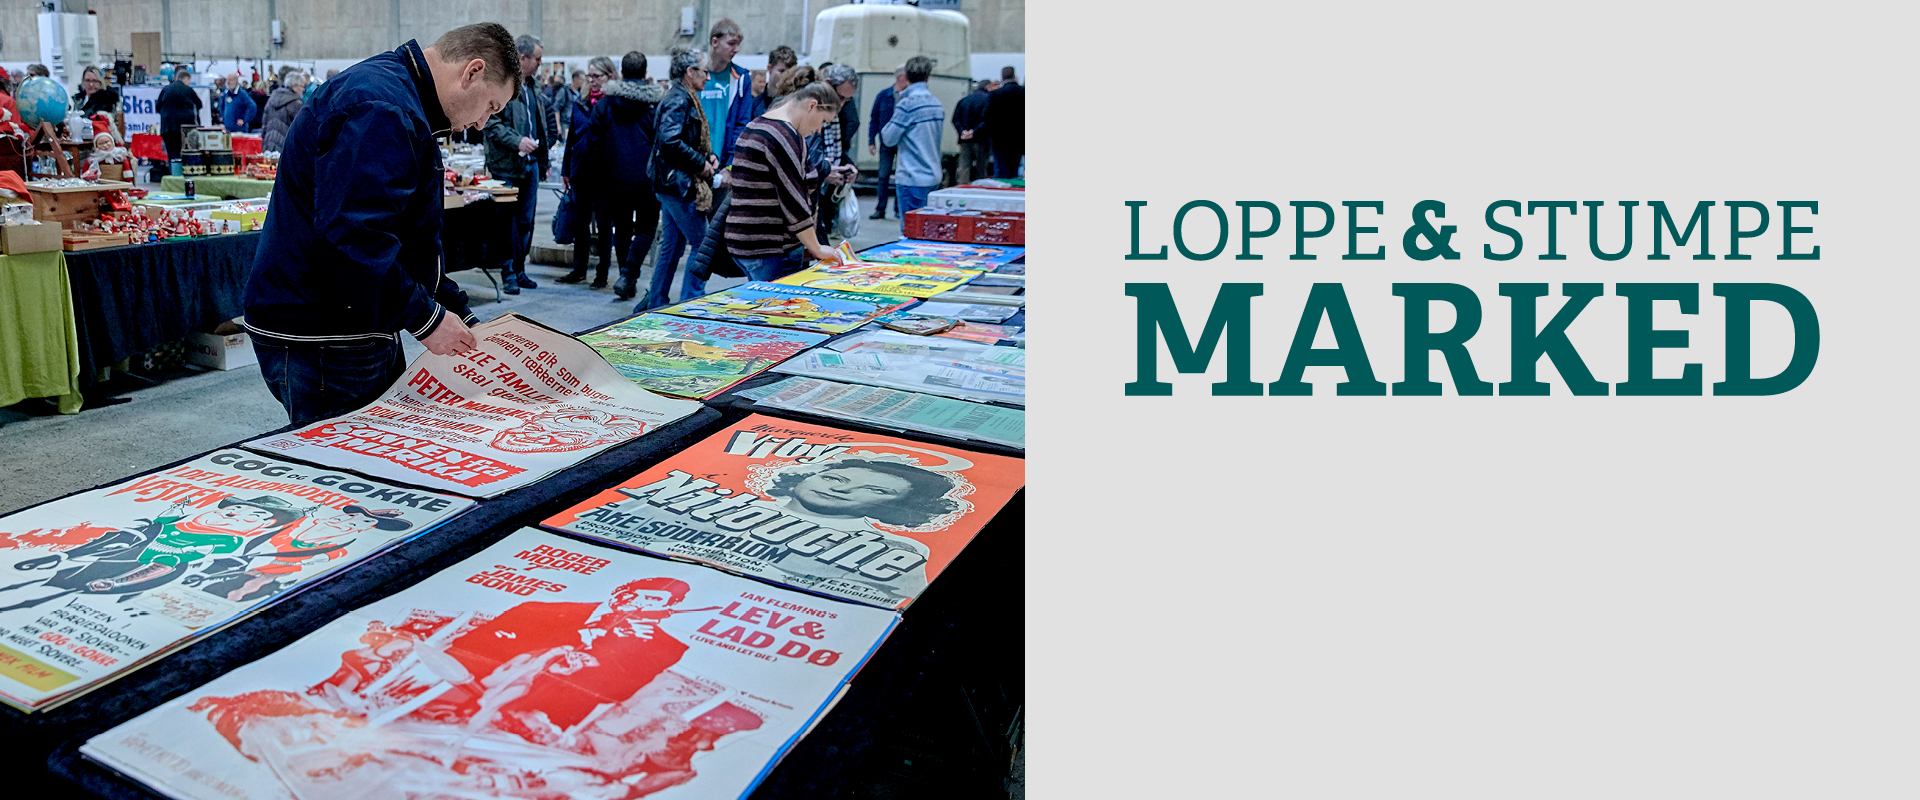 Loppe- og stumpemarked